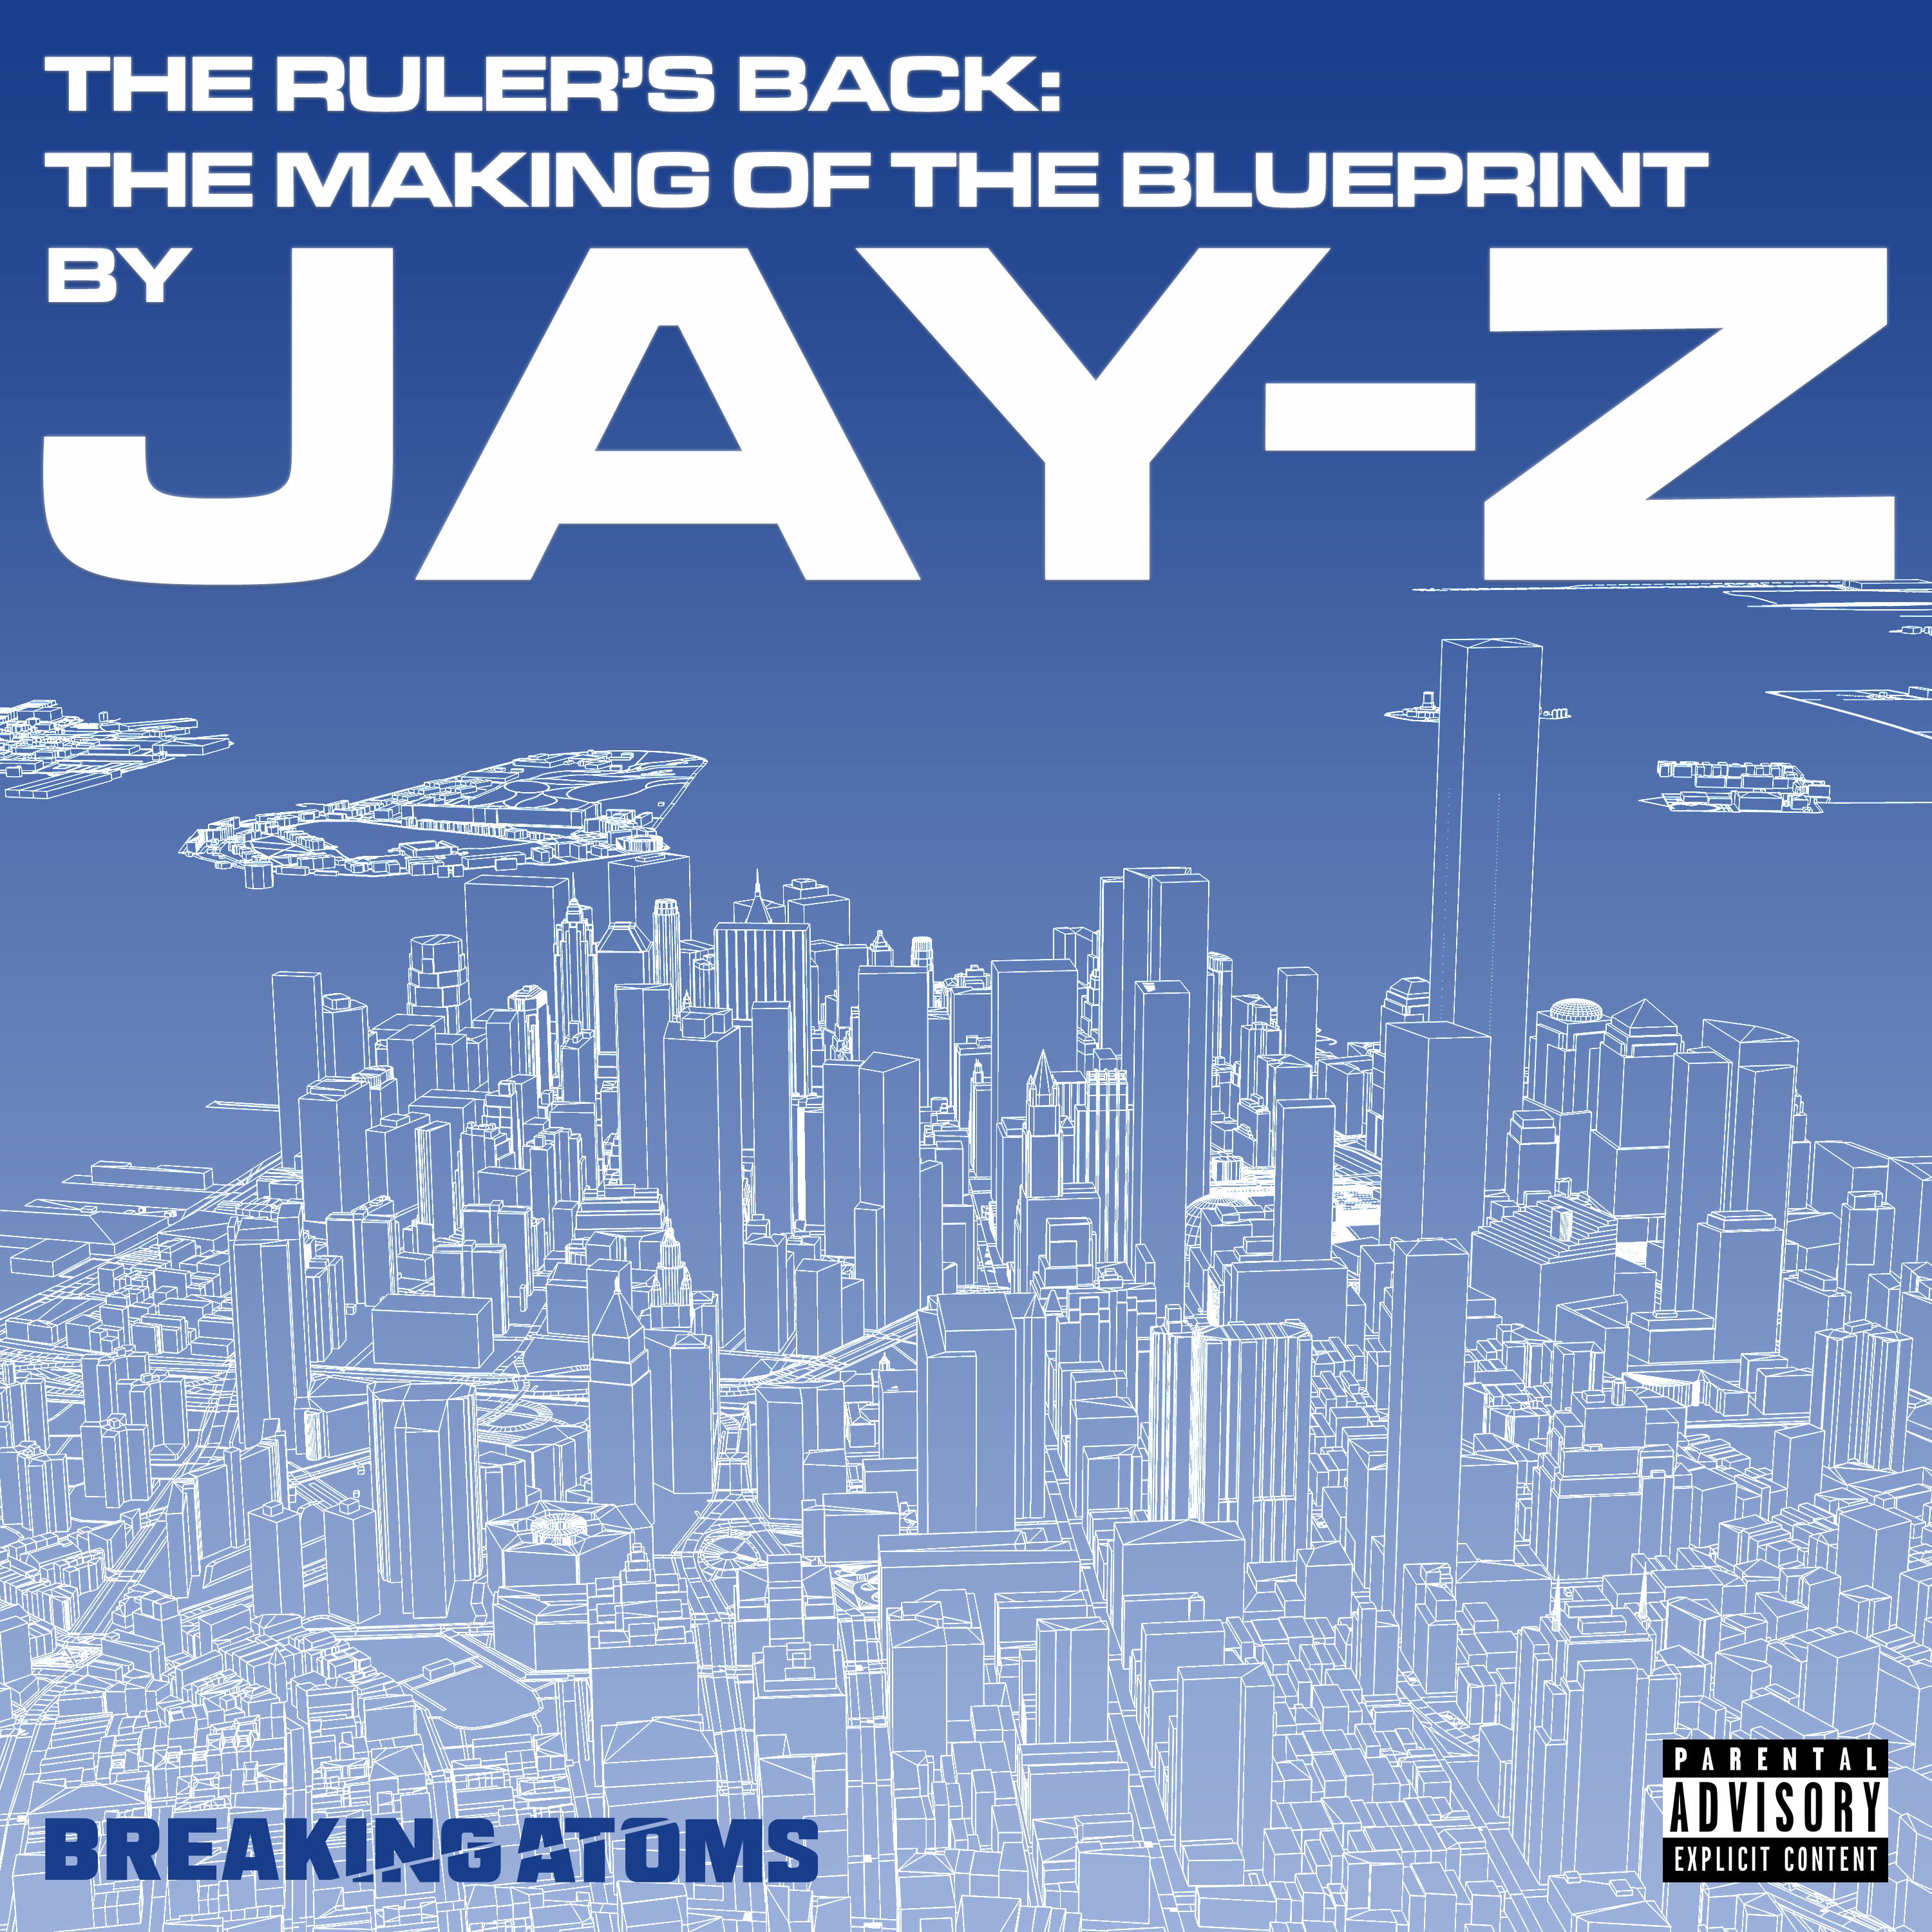 Ep. 1: Hola' Hovito | The Ruler's Back: The Making of The Blueprint by Jay-Z